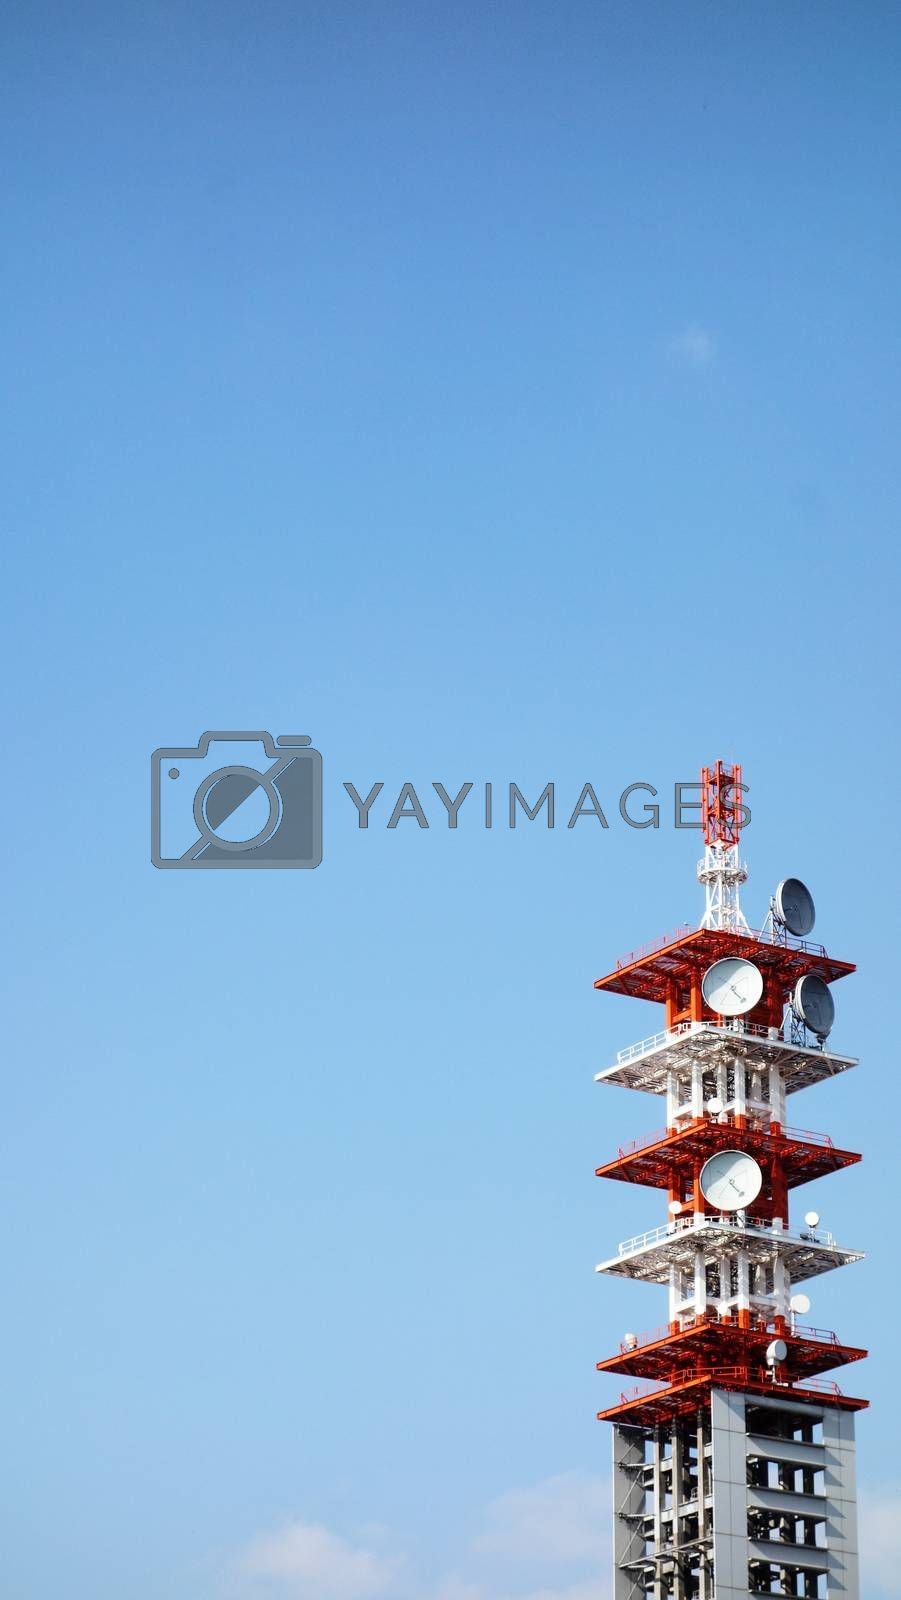 Telecommunication Tower in Tokyo, Japan . Cell Phone Signal Tower on blue sky background. Communication tower on blue sky. top of a cellular repeater tower. Cell tower white against a blue sky background. Copy space